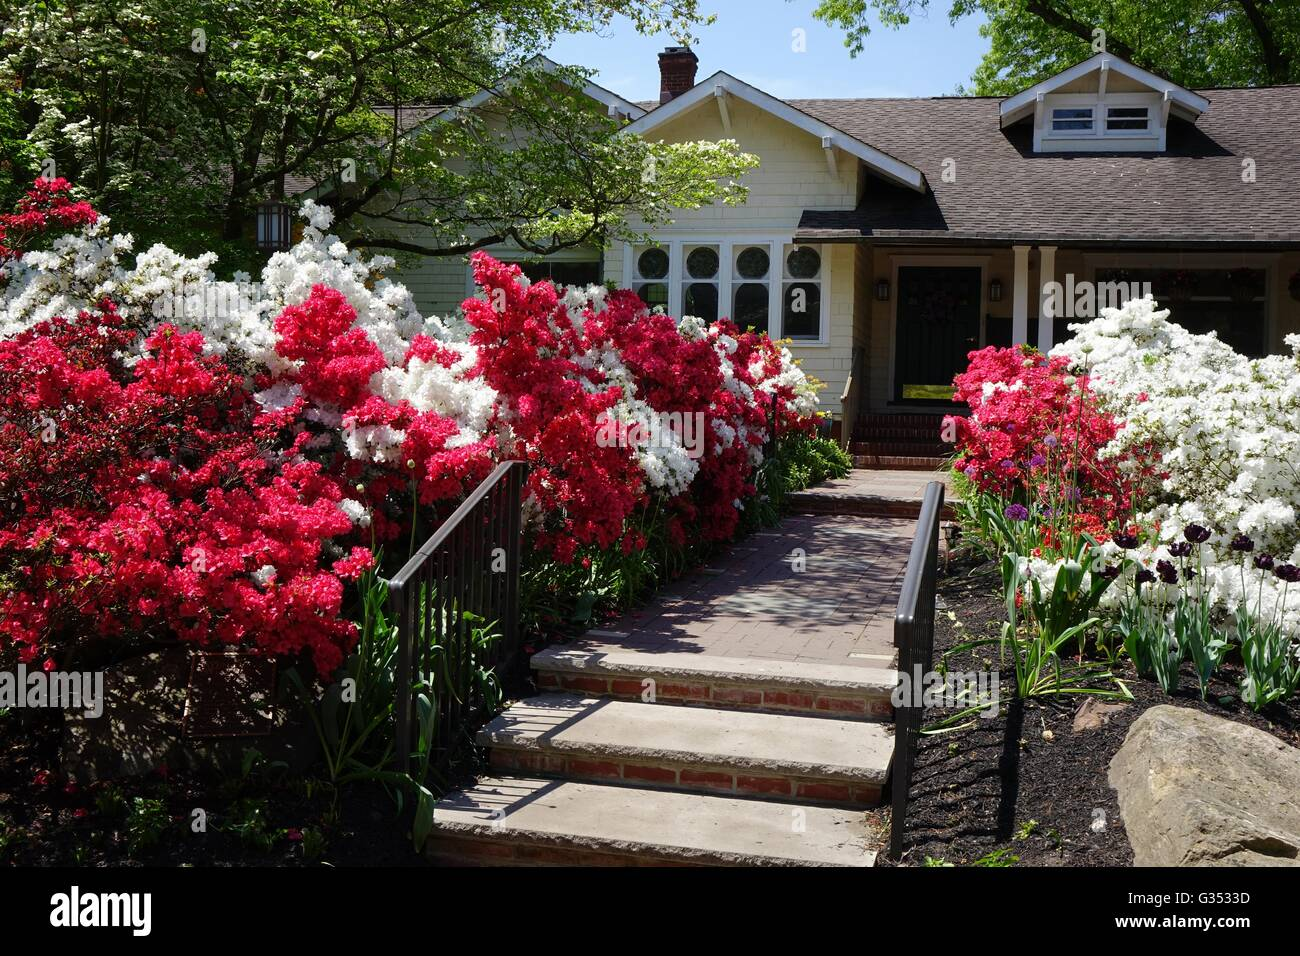 Azaleas Brighten The Front Of Sayen House In Sayen House And Gardens Park,  Hamilton, New Jersey, Mercer County